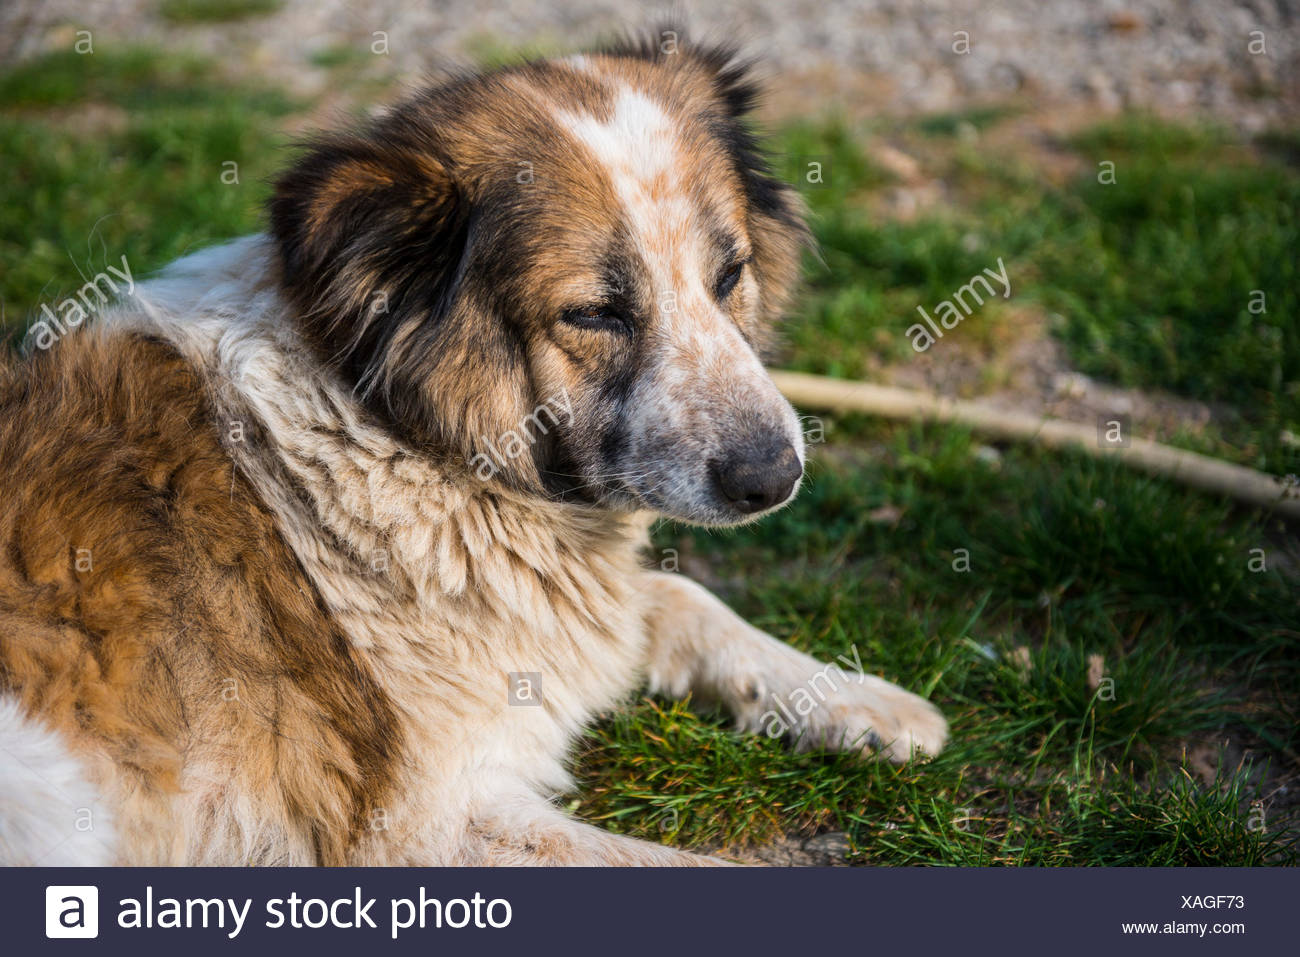 Italy, Tuscany, White and brown fur dog relaxing on a dirt road paying attention to something - Stock Image